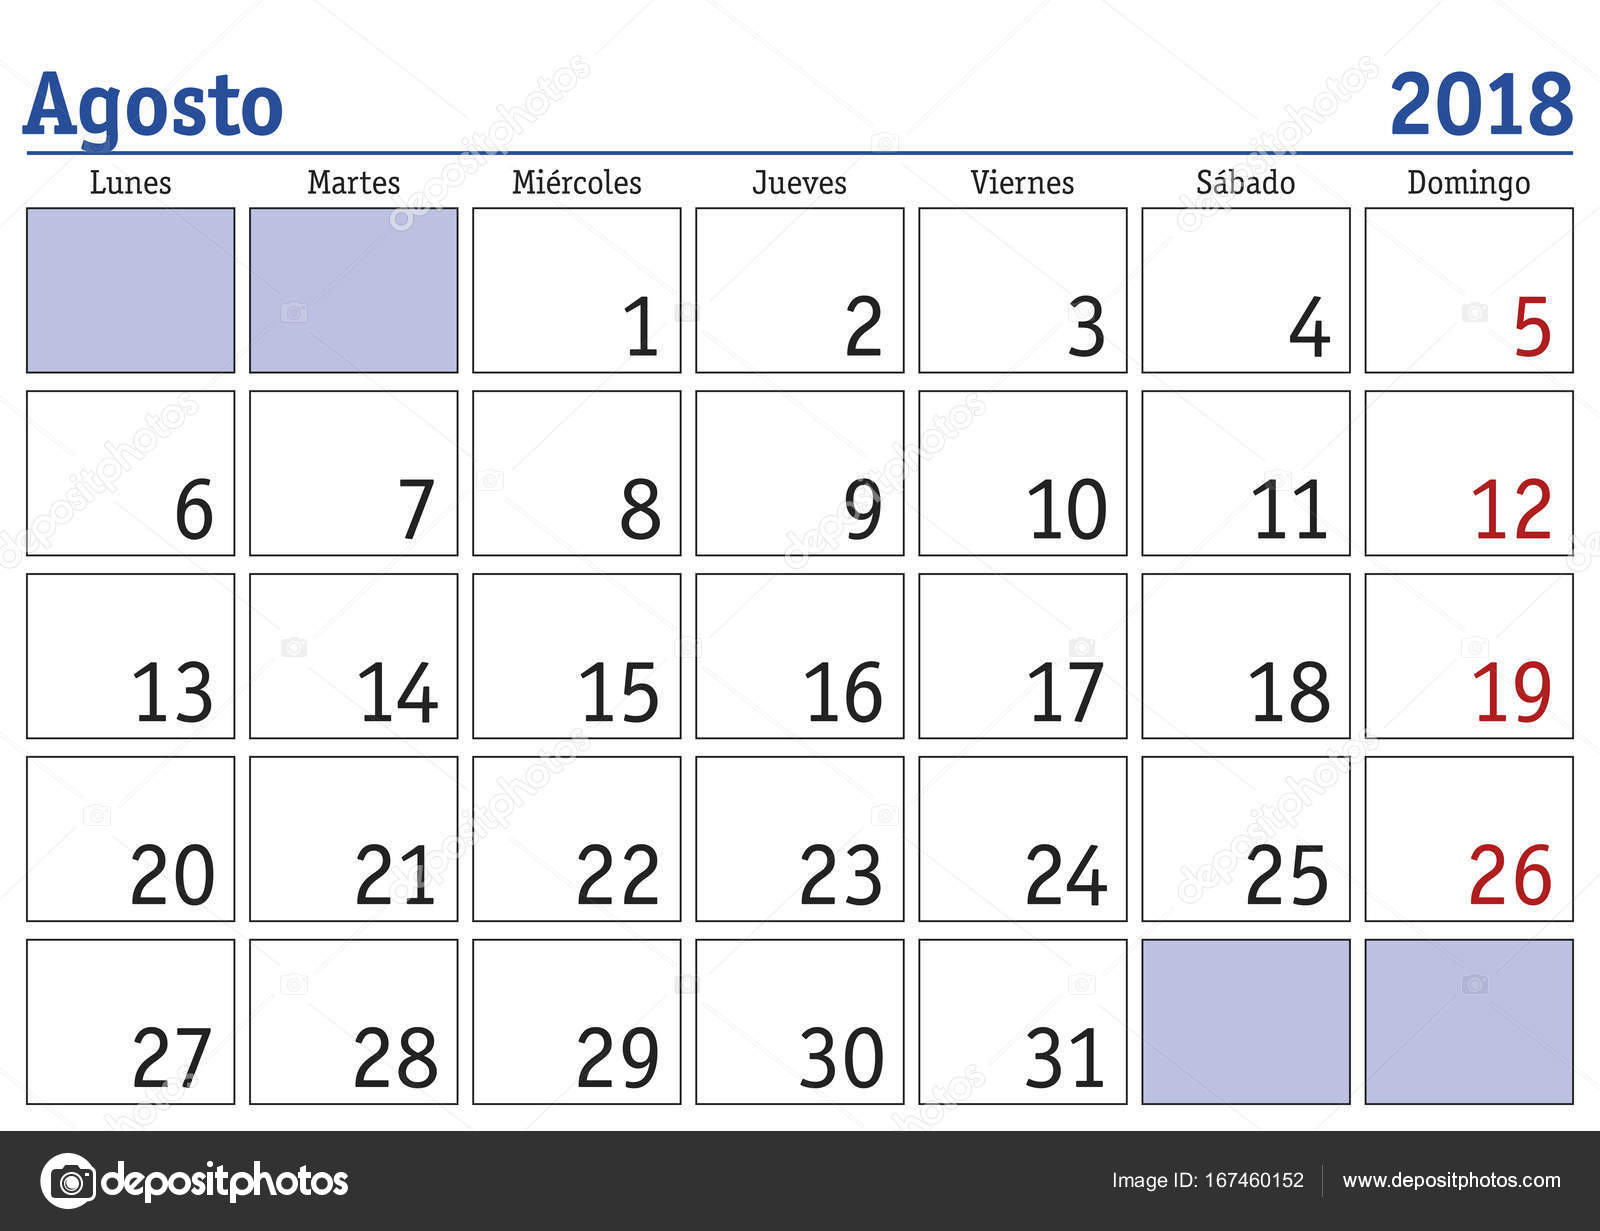 agosto 2018 wall calendar spanish stock vector